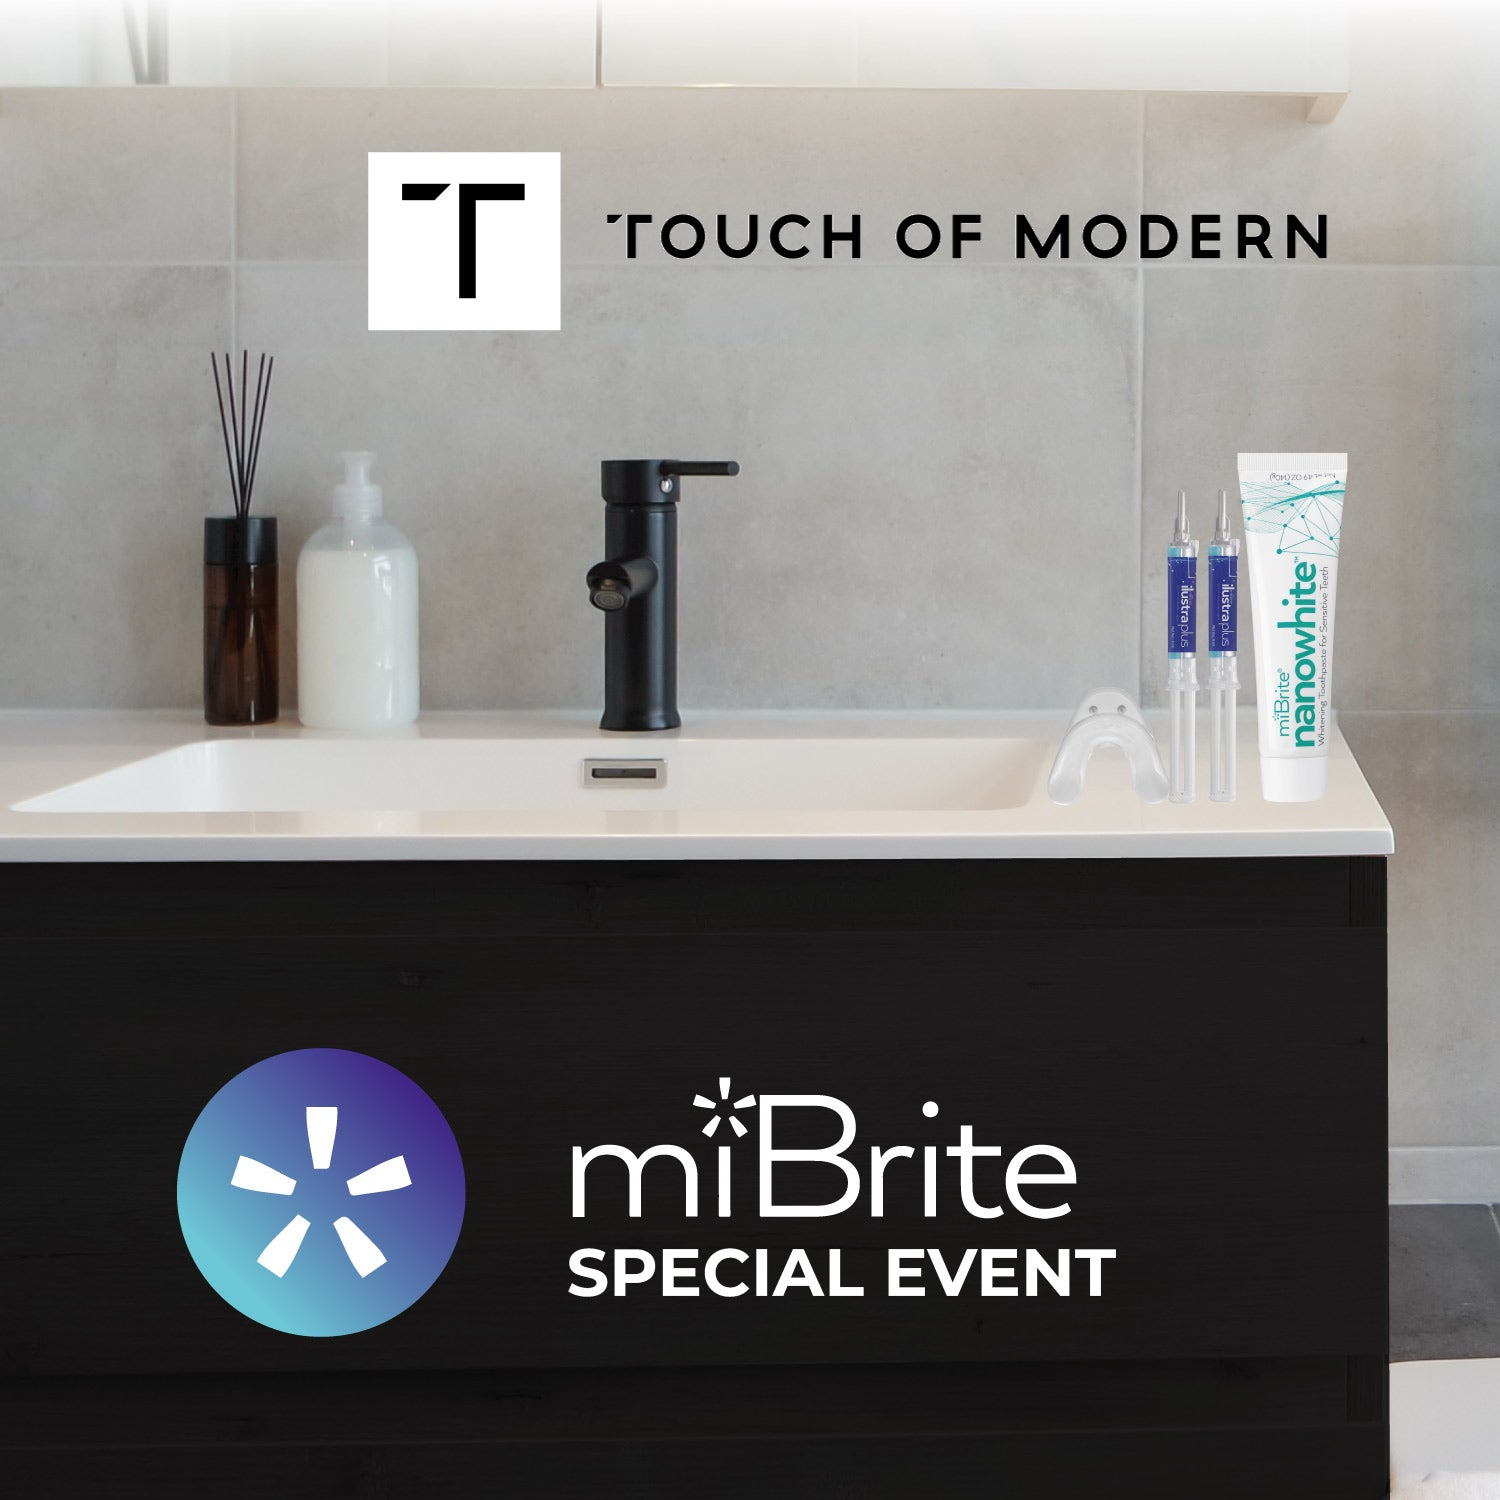 miBrite Event with Touch of Modern Begins Today